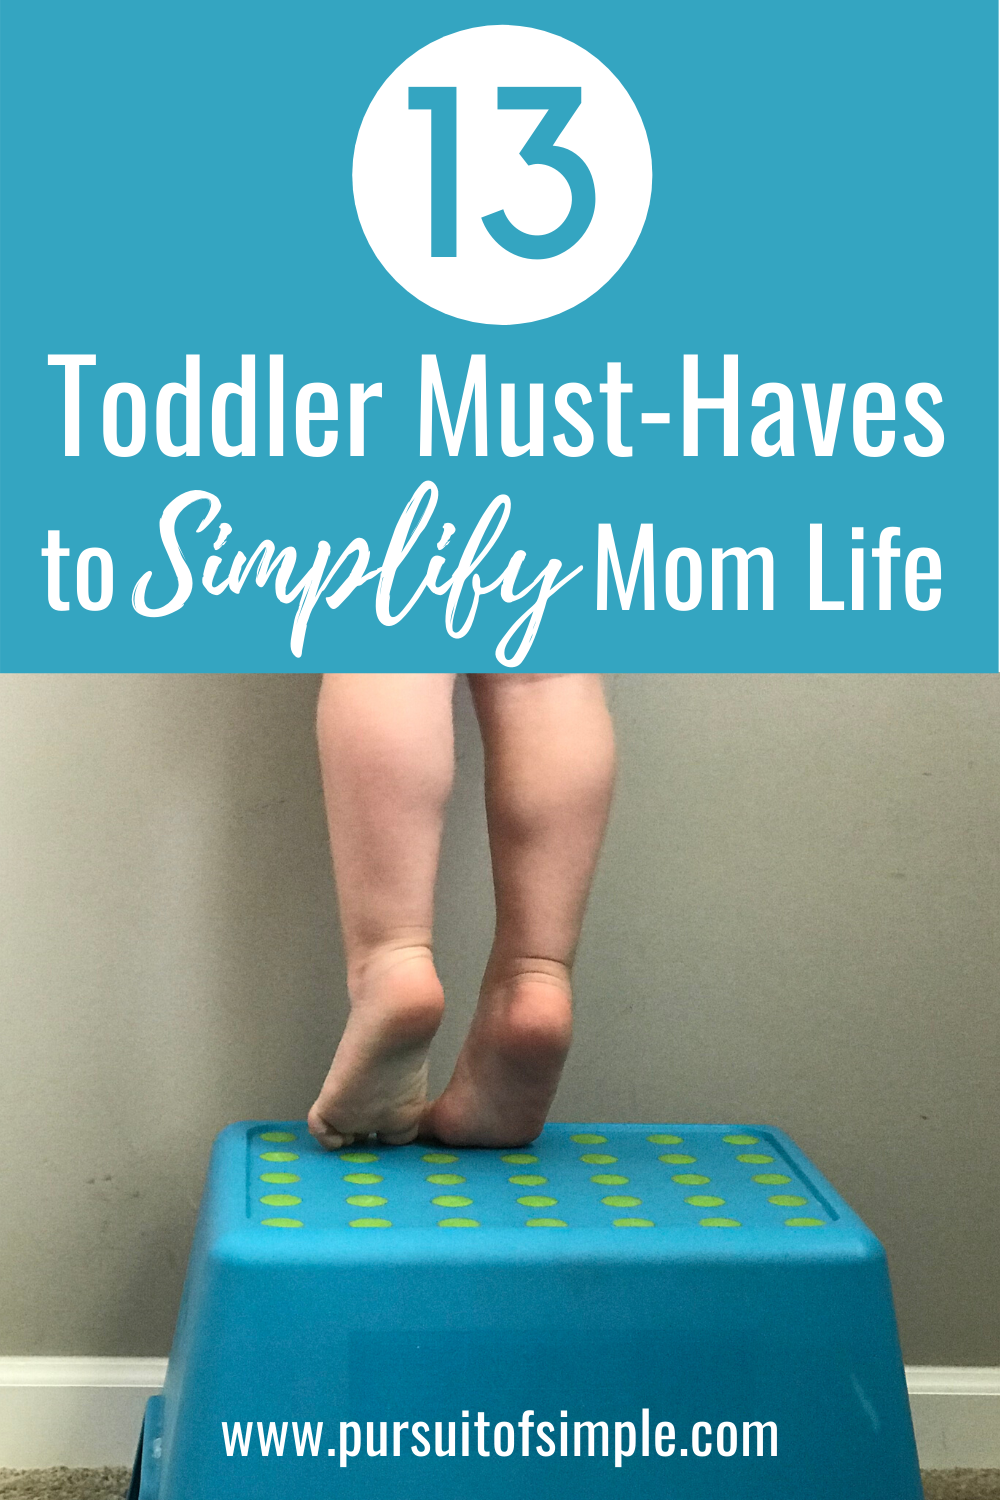 Practical toddler must-haves to help make life easier -  a toddler essentials list to help simplify mom life. #toddler #toddlerlife #productsthatsimplify #momlife #toddlermusthaves #toddleressentials #simplify #toddlergear #toddlerproducts